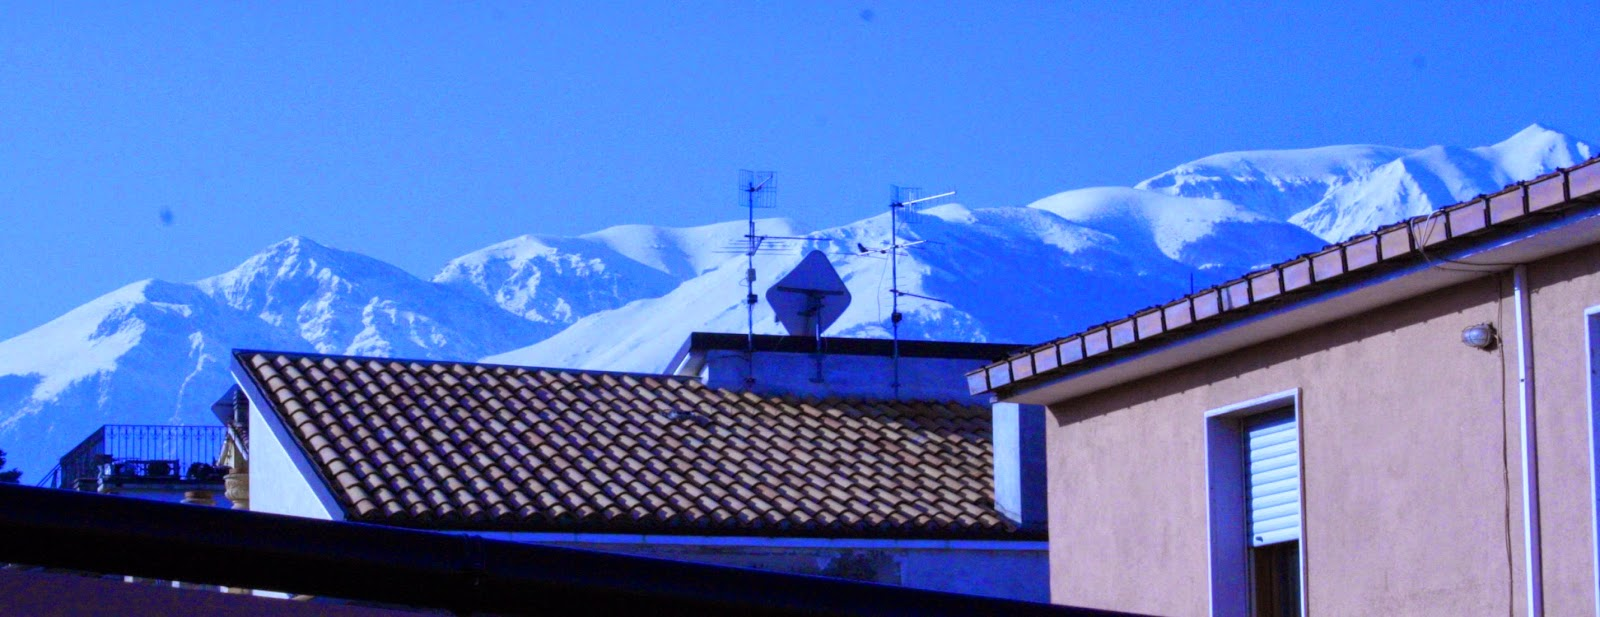 Living with abroad in tuscany guardiagrele hard to for Terrace pronunciation